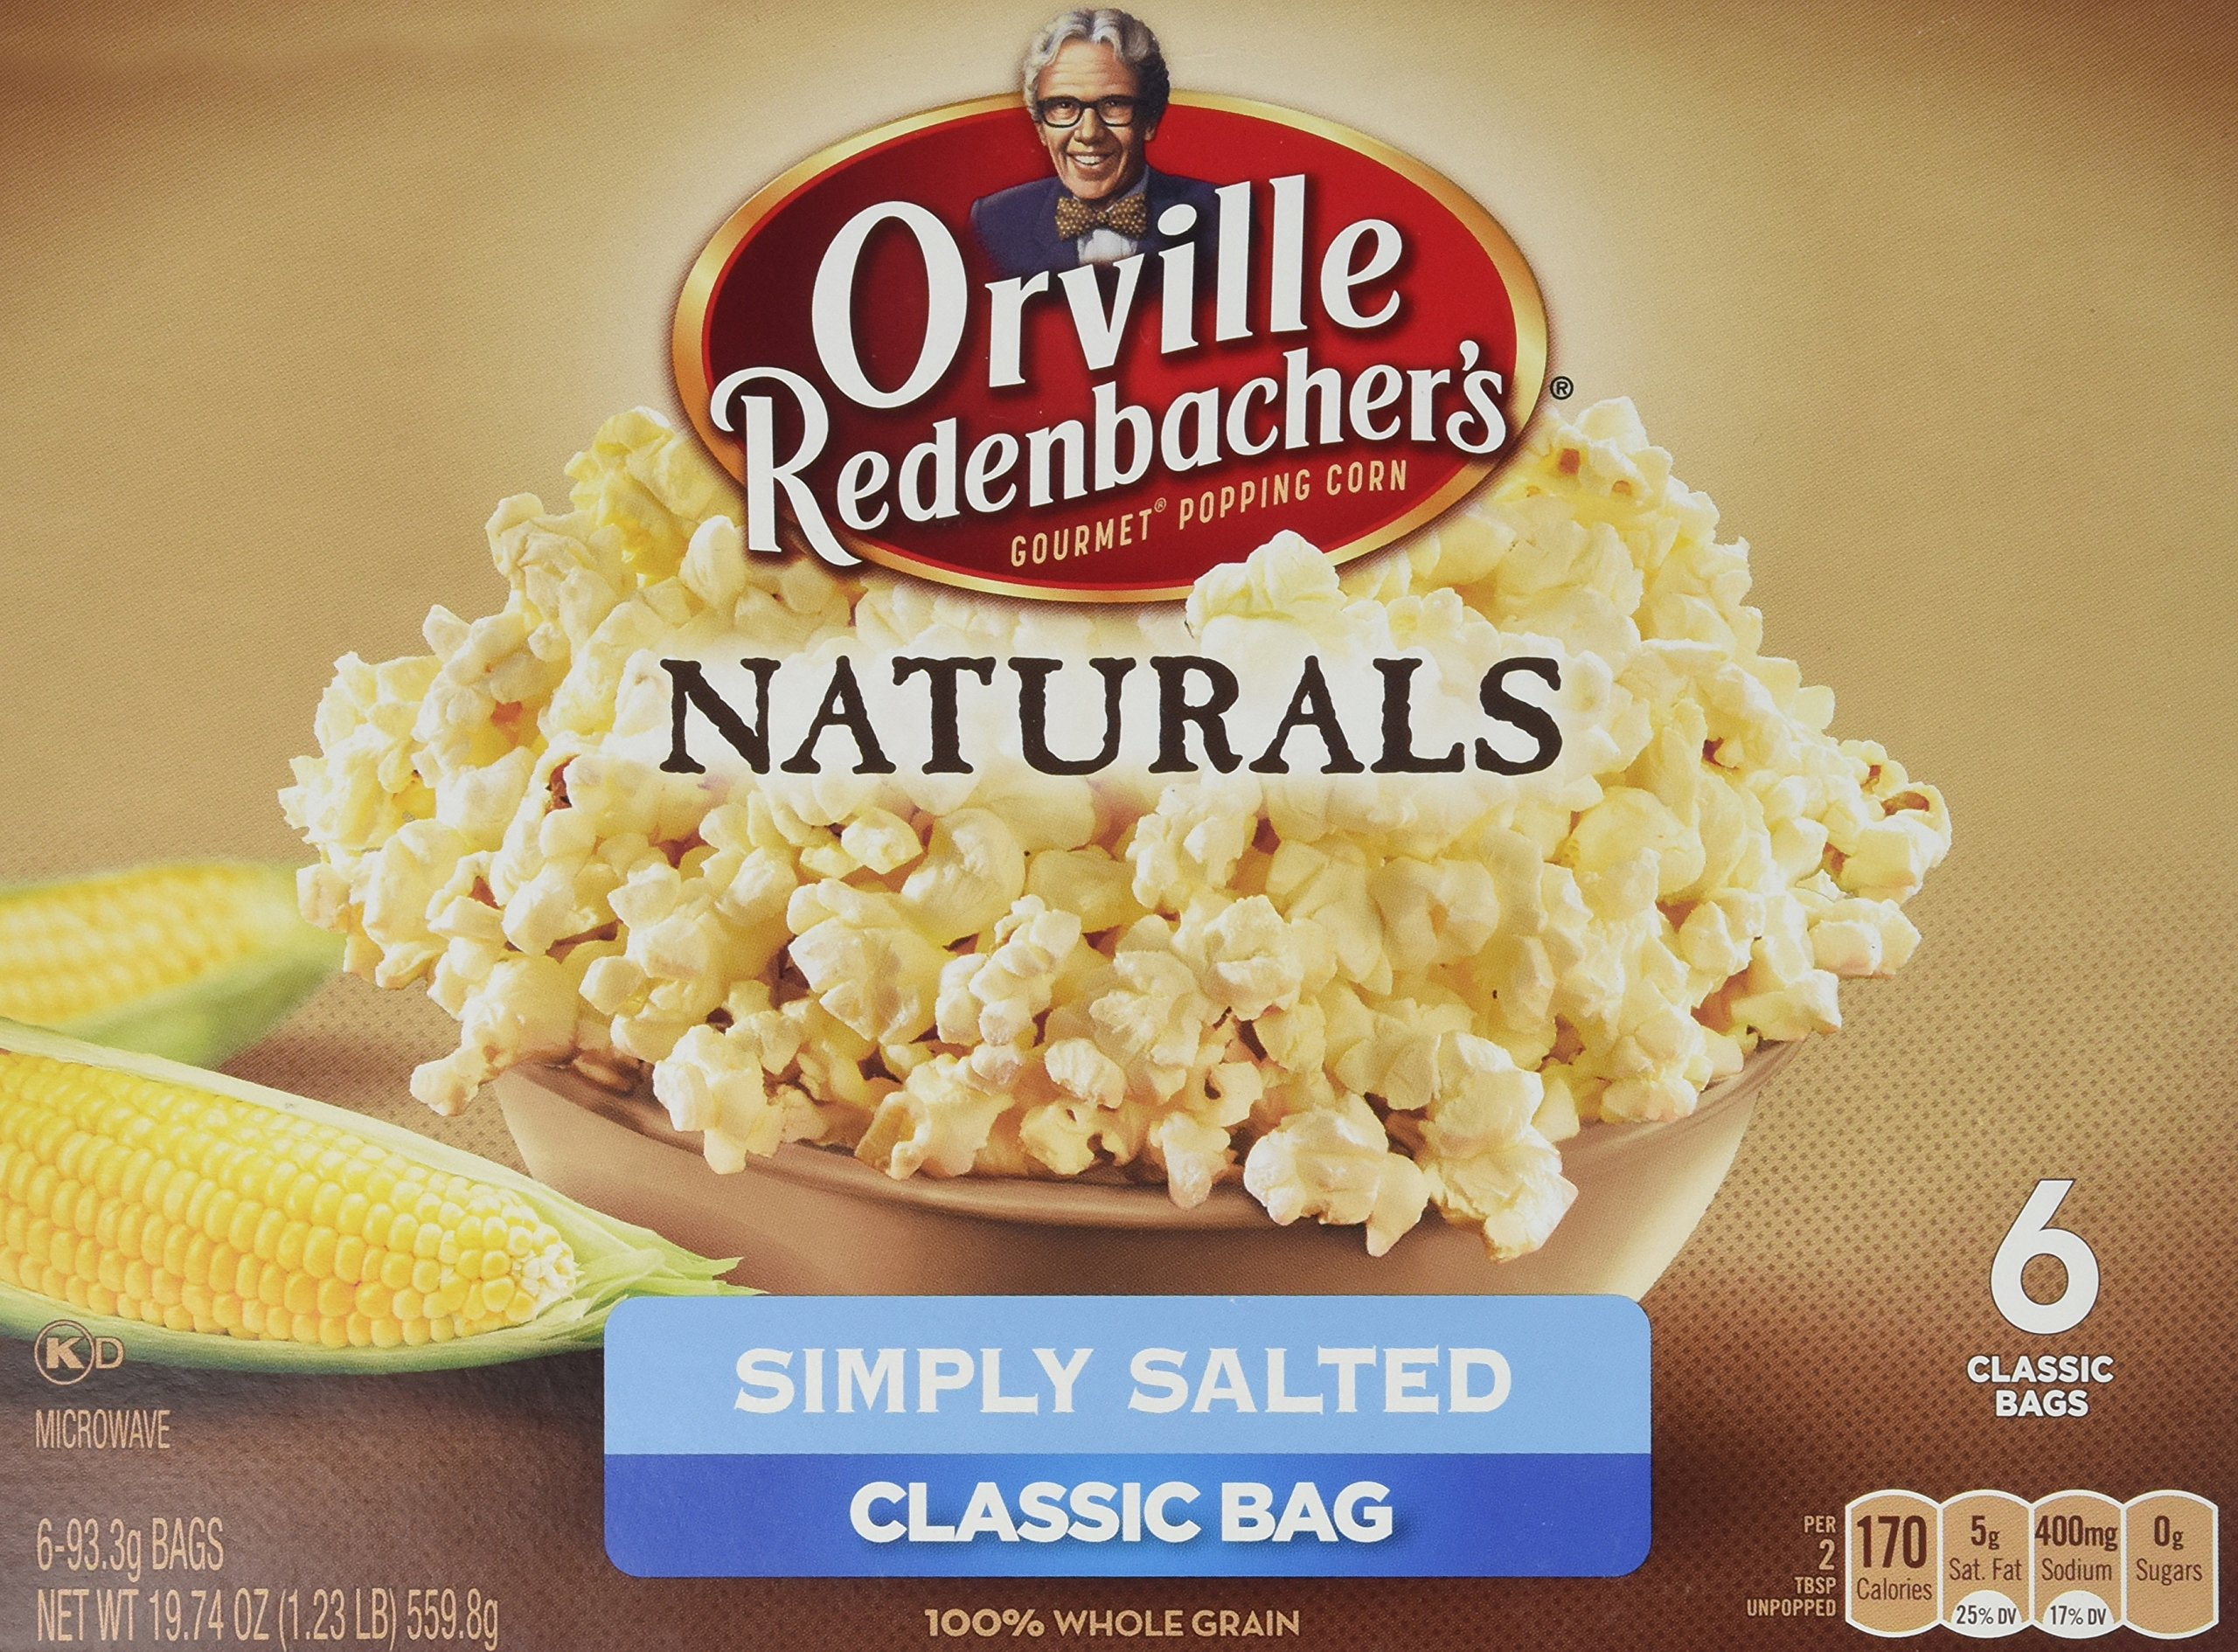 2x Orville Redenbacher's Gourmet Microwavable Popcorn, Natural Simply Salted, 6 Count (=12 Bags)